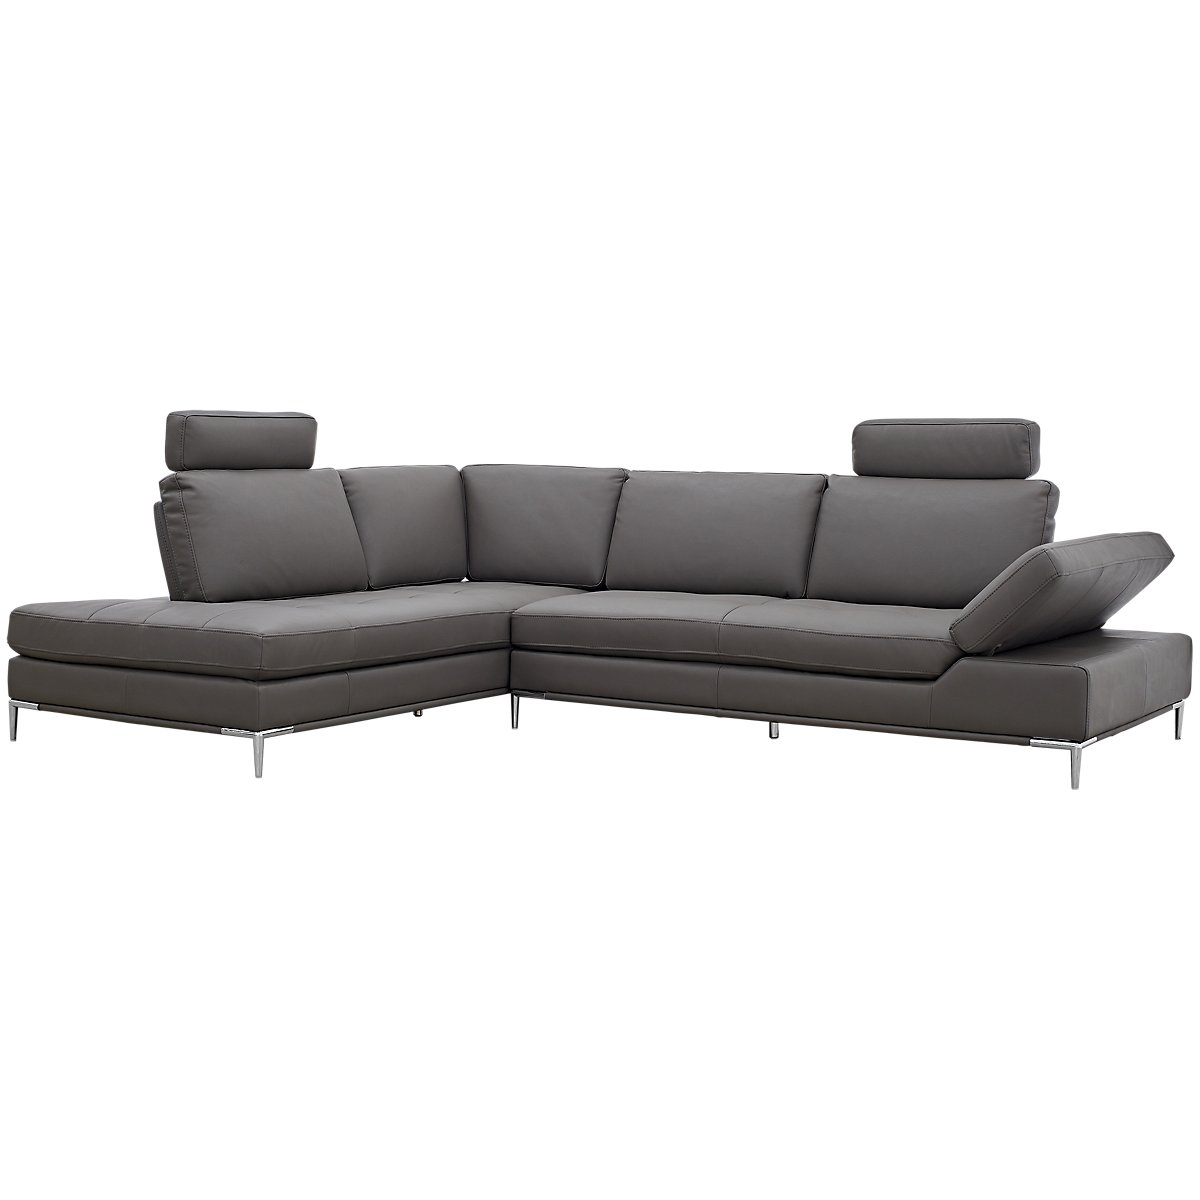 City furniture camden dark gray microfiber left chaise for Gray microfiber sectional sofa with chaise